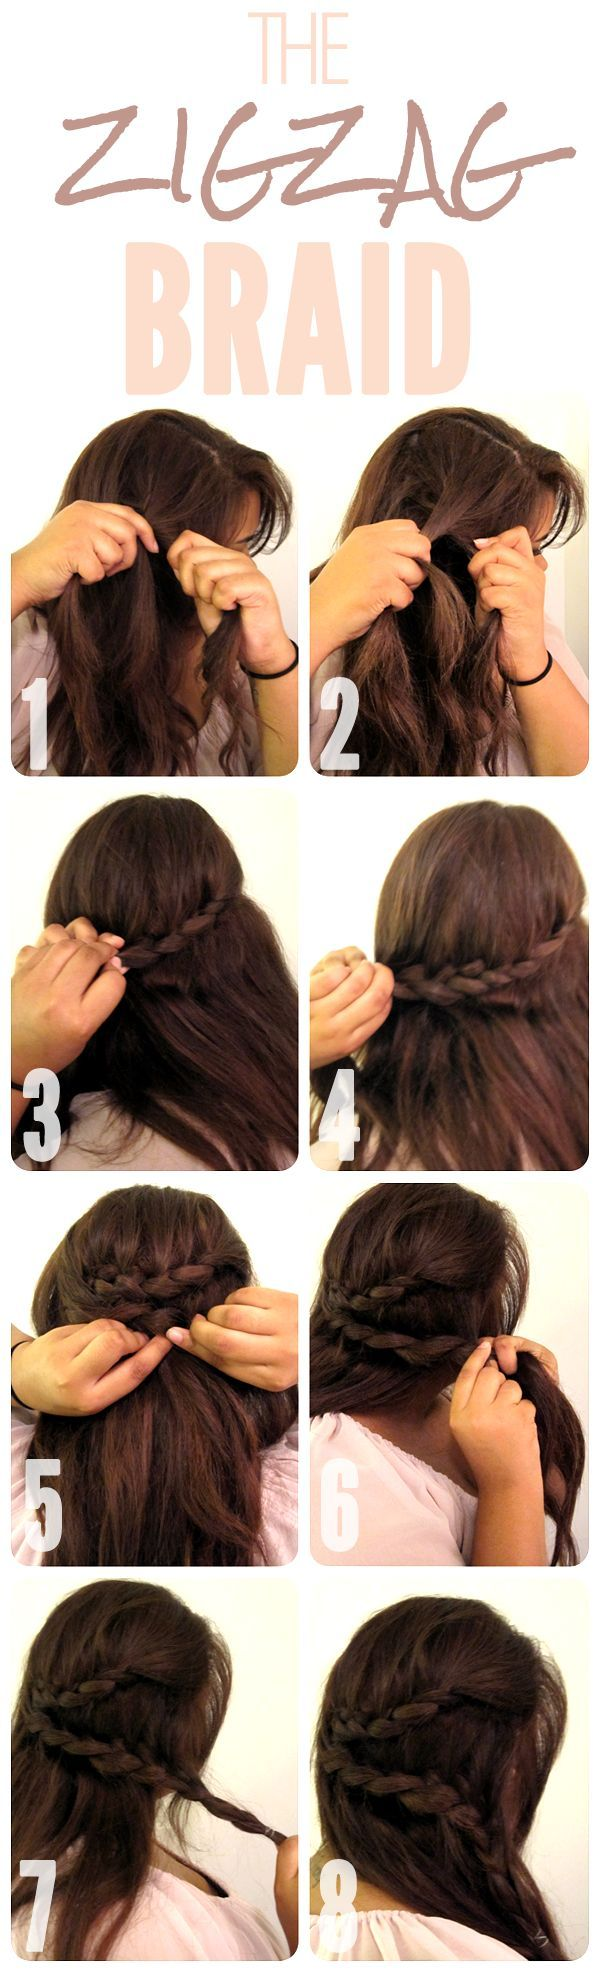 Easy hairstyle tutorials easy hairstyles tutorials easy